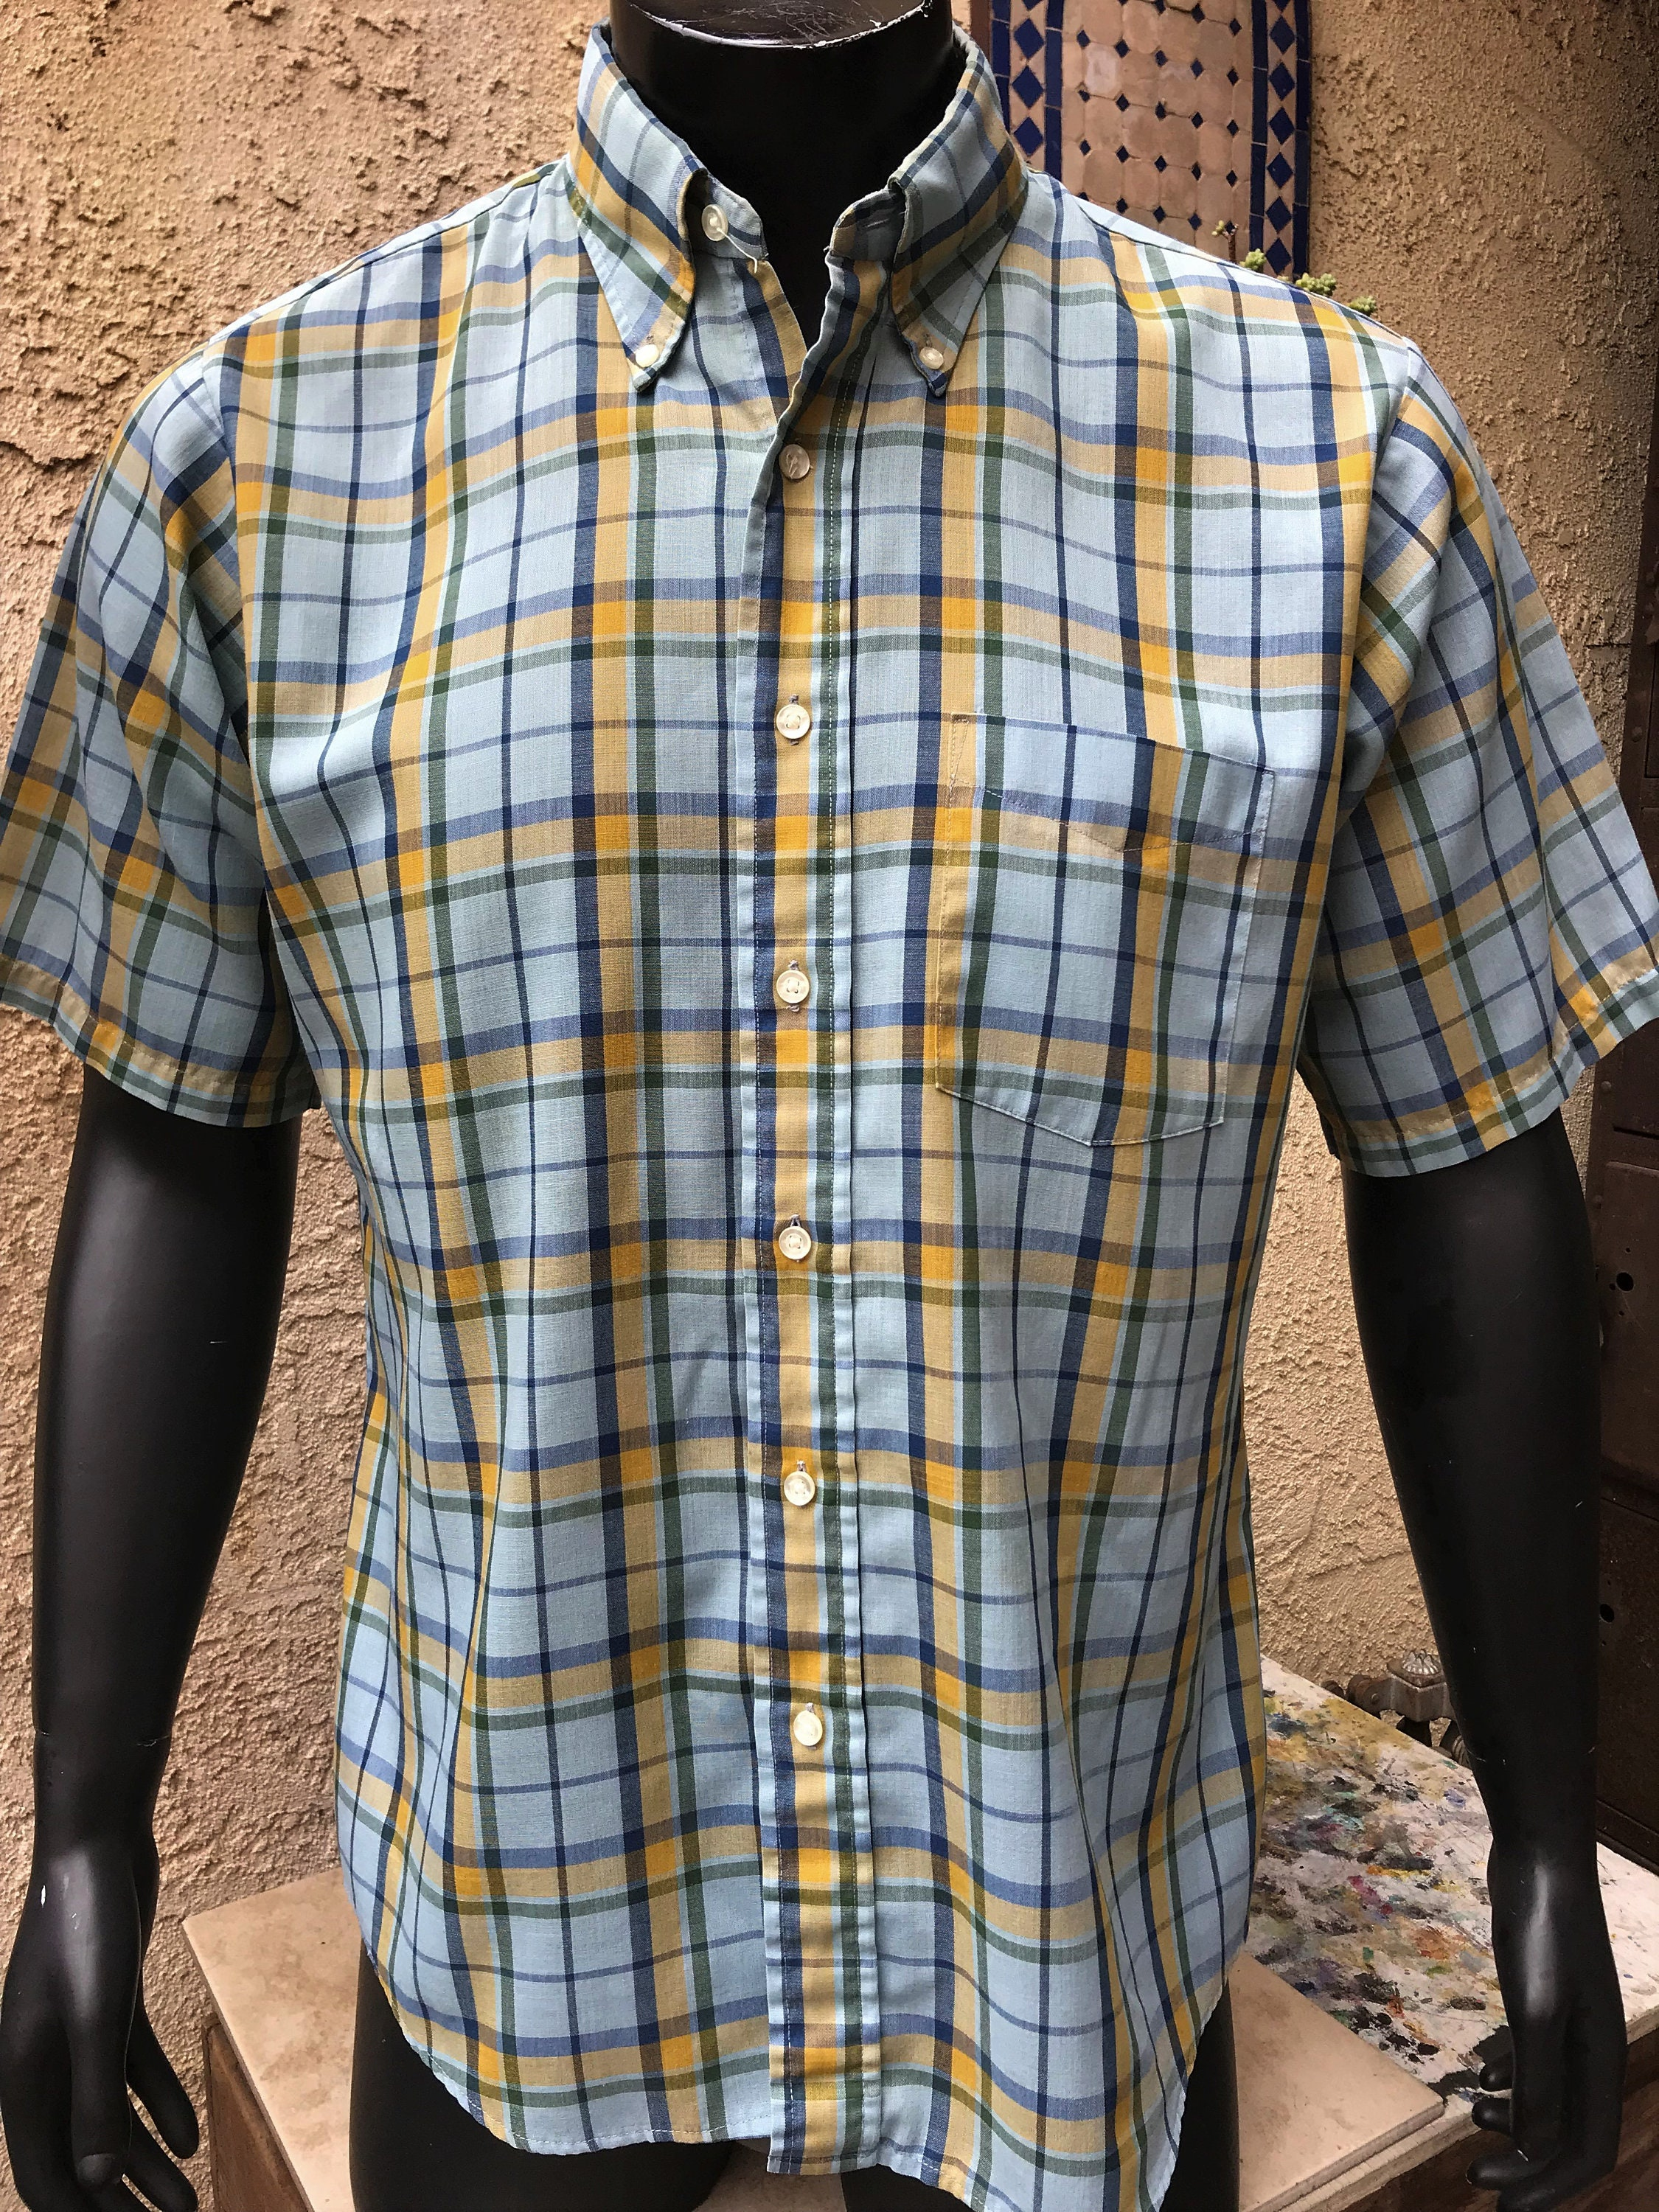 48ac7fe6e Towncraft Tapered by J.C. Penney Men's Button Front Casual Shirt, Vintage  Penney's Yellow & Green Plaid Summer Shirt, Made in the USA